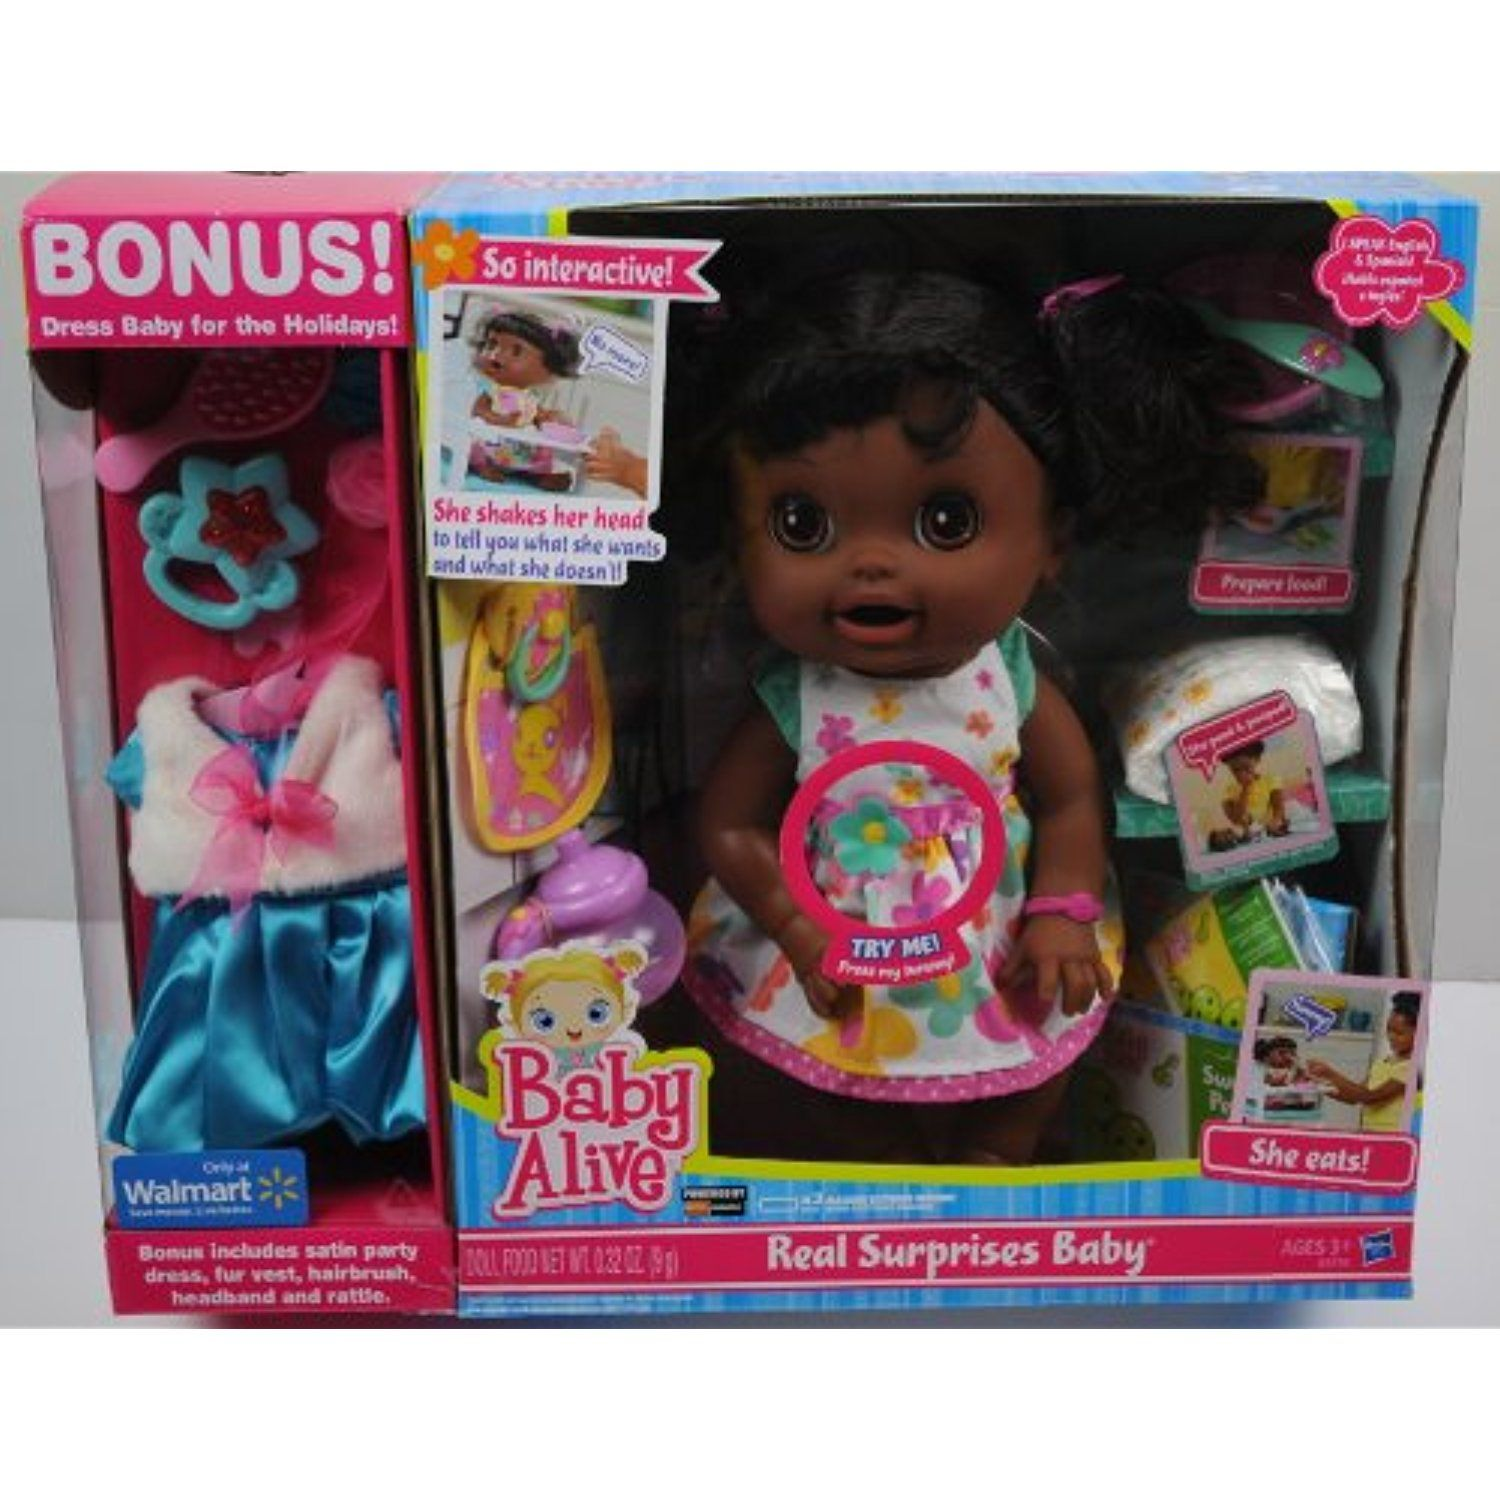 Baby Alive Real Surprises Baby Exclusive Bonus Holiday Outfit African American See This Great Product This Is An Aff Baby Alive Surprise Baby Baby Dolls